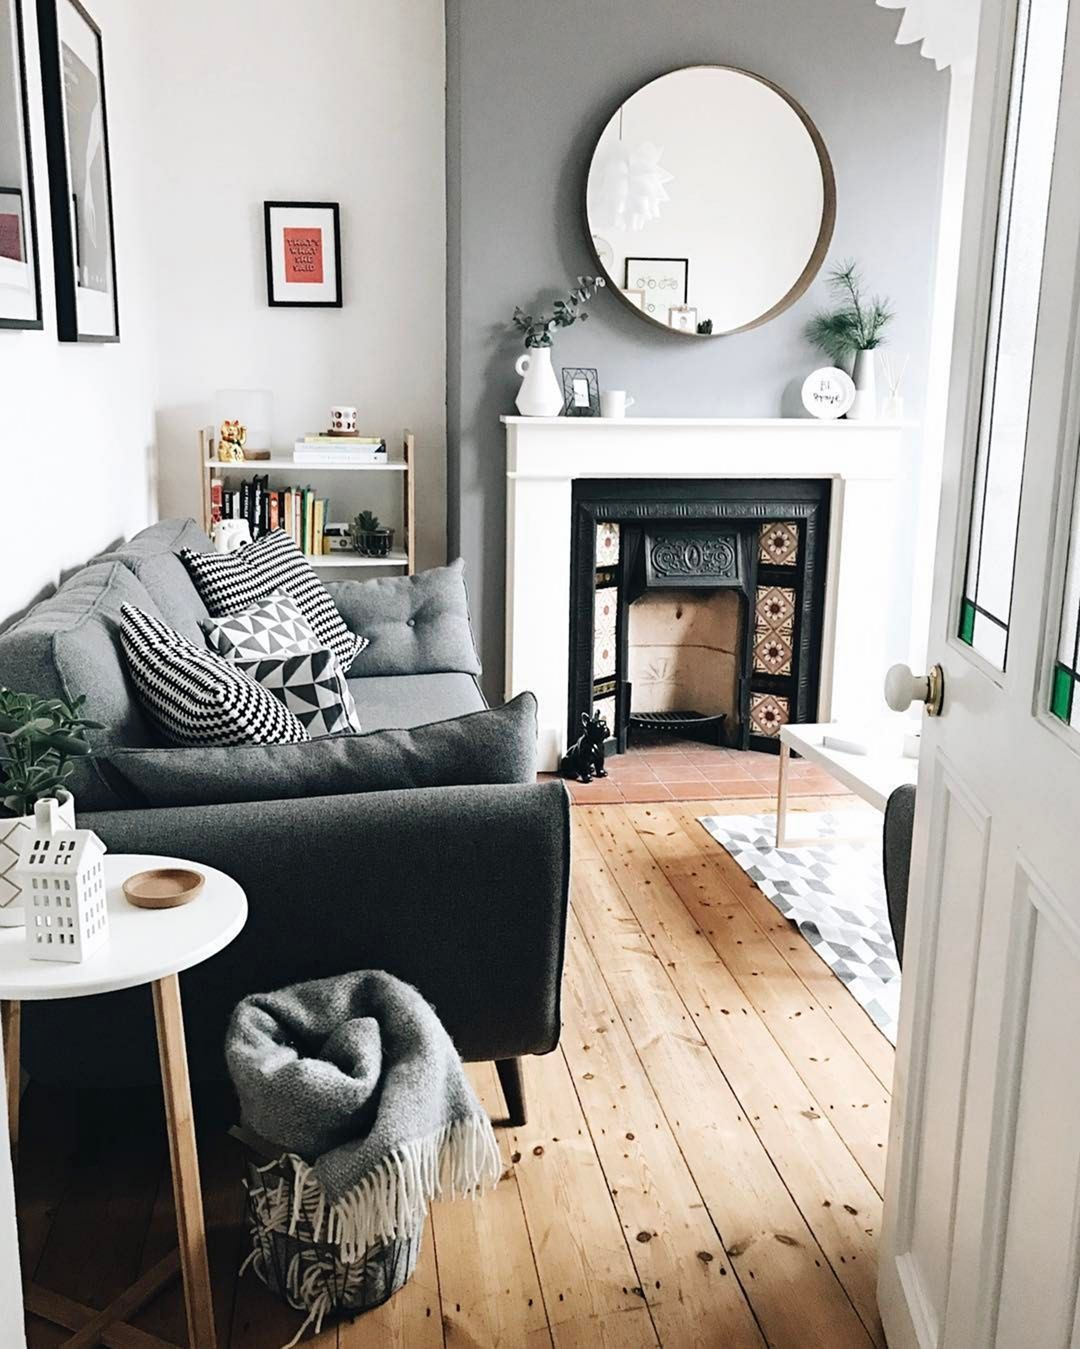 30 Tiny Living Room Apartment Design Ideas For Your Apartment images